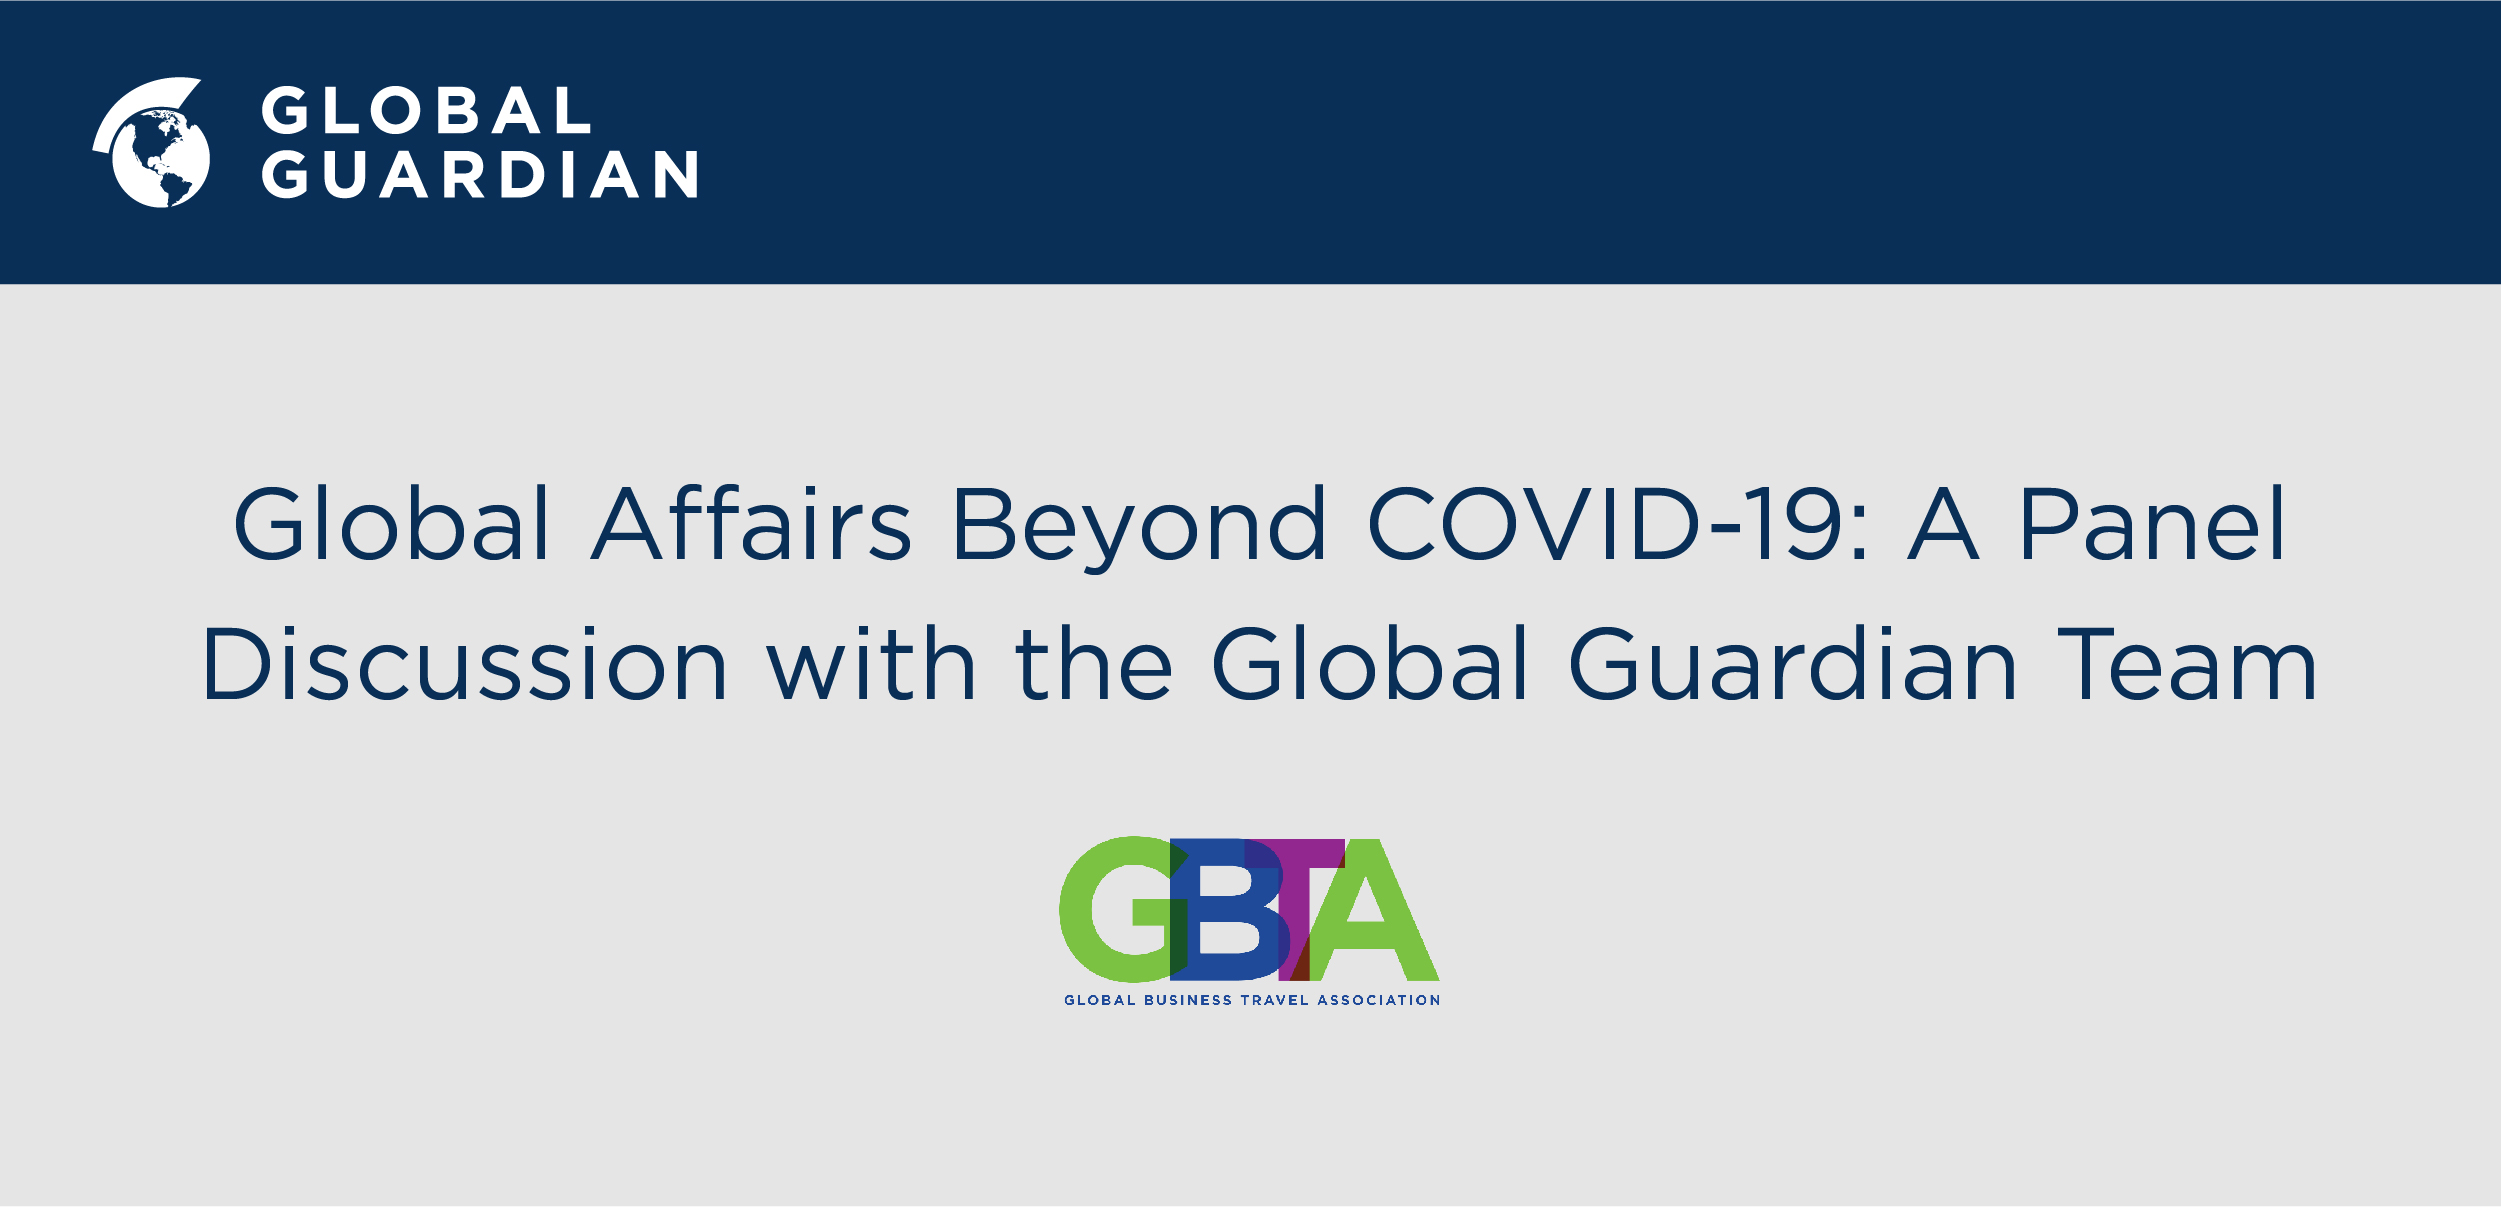 GBTA's Recent Webinar Features Global Guardian Team